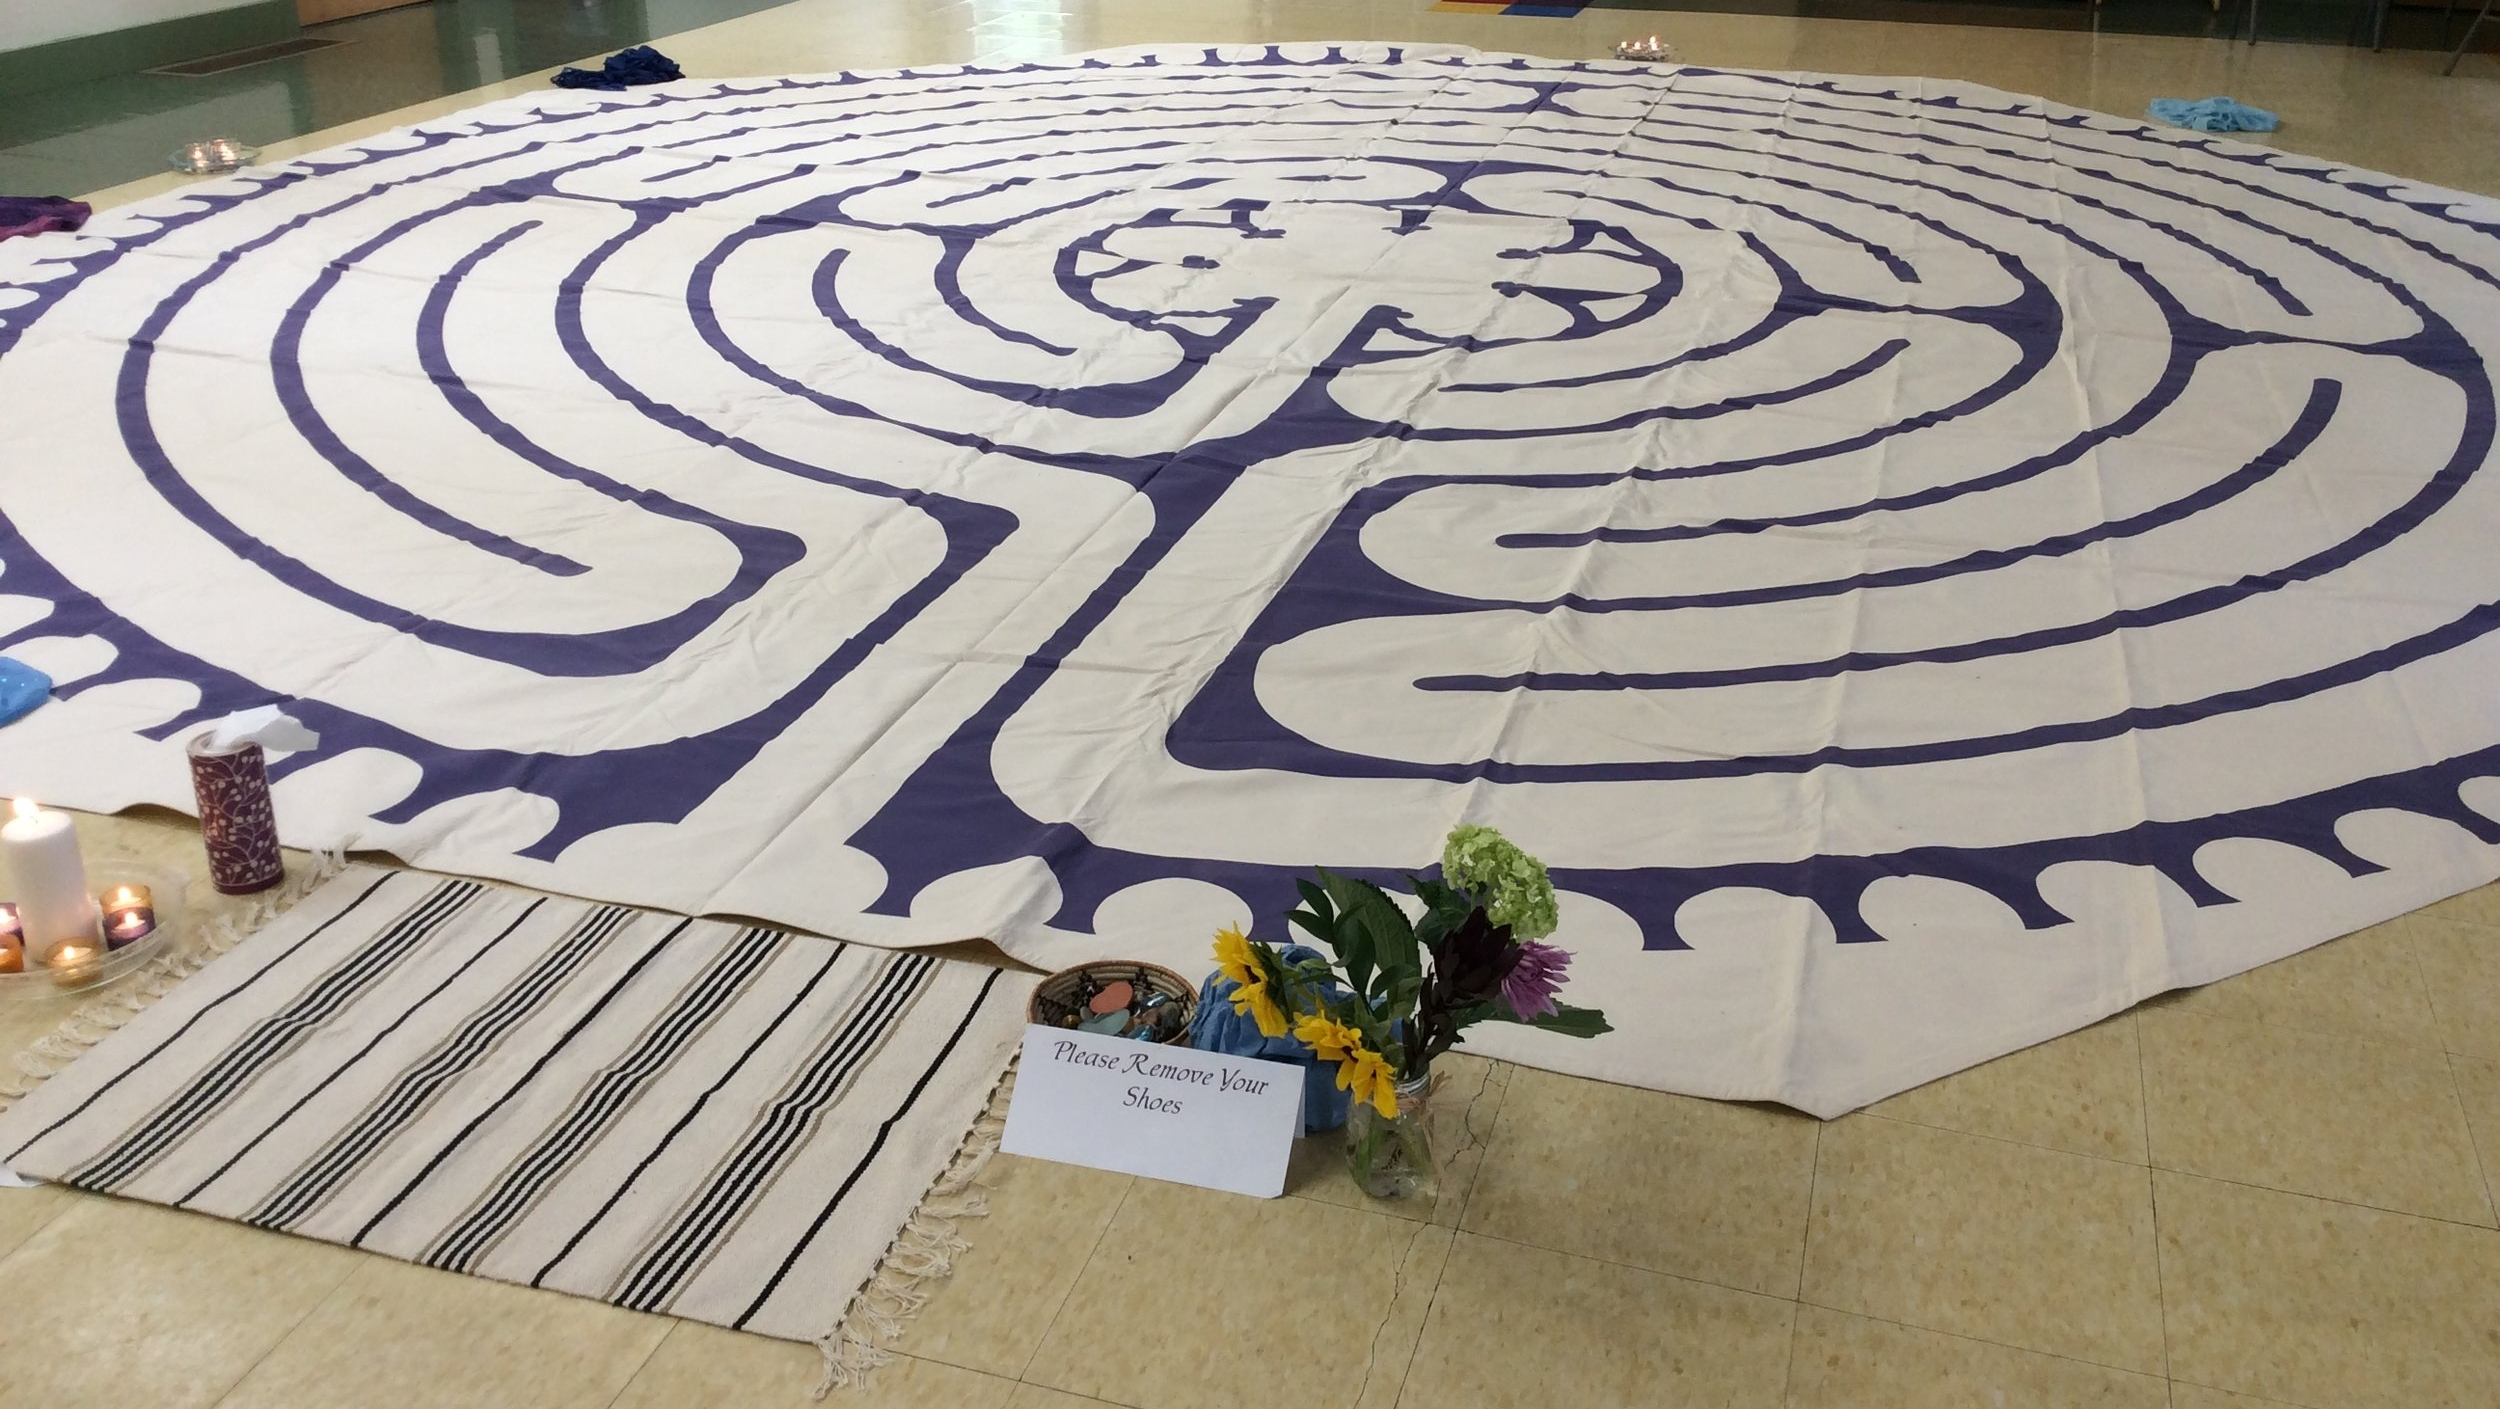 … - Anne has a 22' modified Chartres canvas labyrinth. Her canvas is often used as an integral part of her workshops. Her labyrinth is also available as part of her work with organizations, including using it for team building, developing rituals, and to offer it as outreach to the communitiesserved. Anne also has small finger labyrinths for use during workshops or during spiritual companionship sessions.